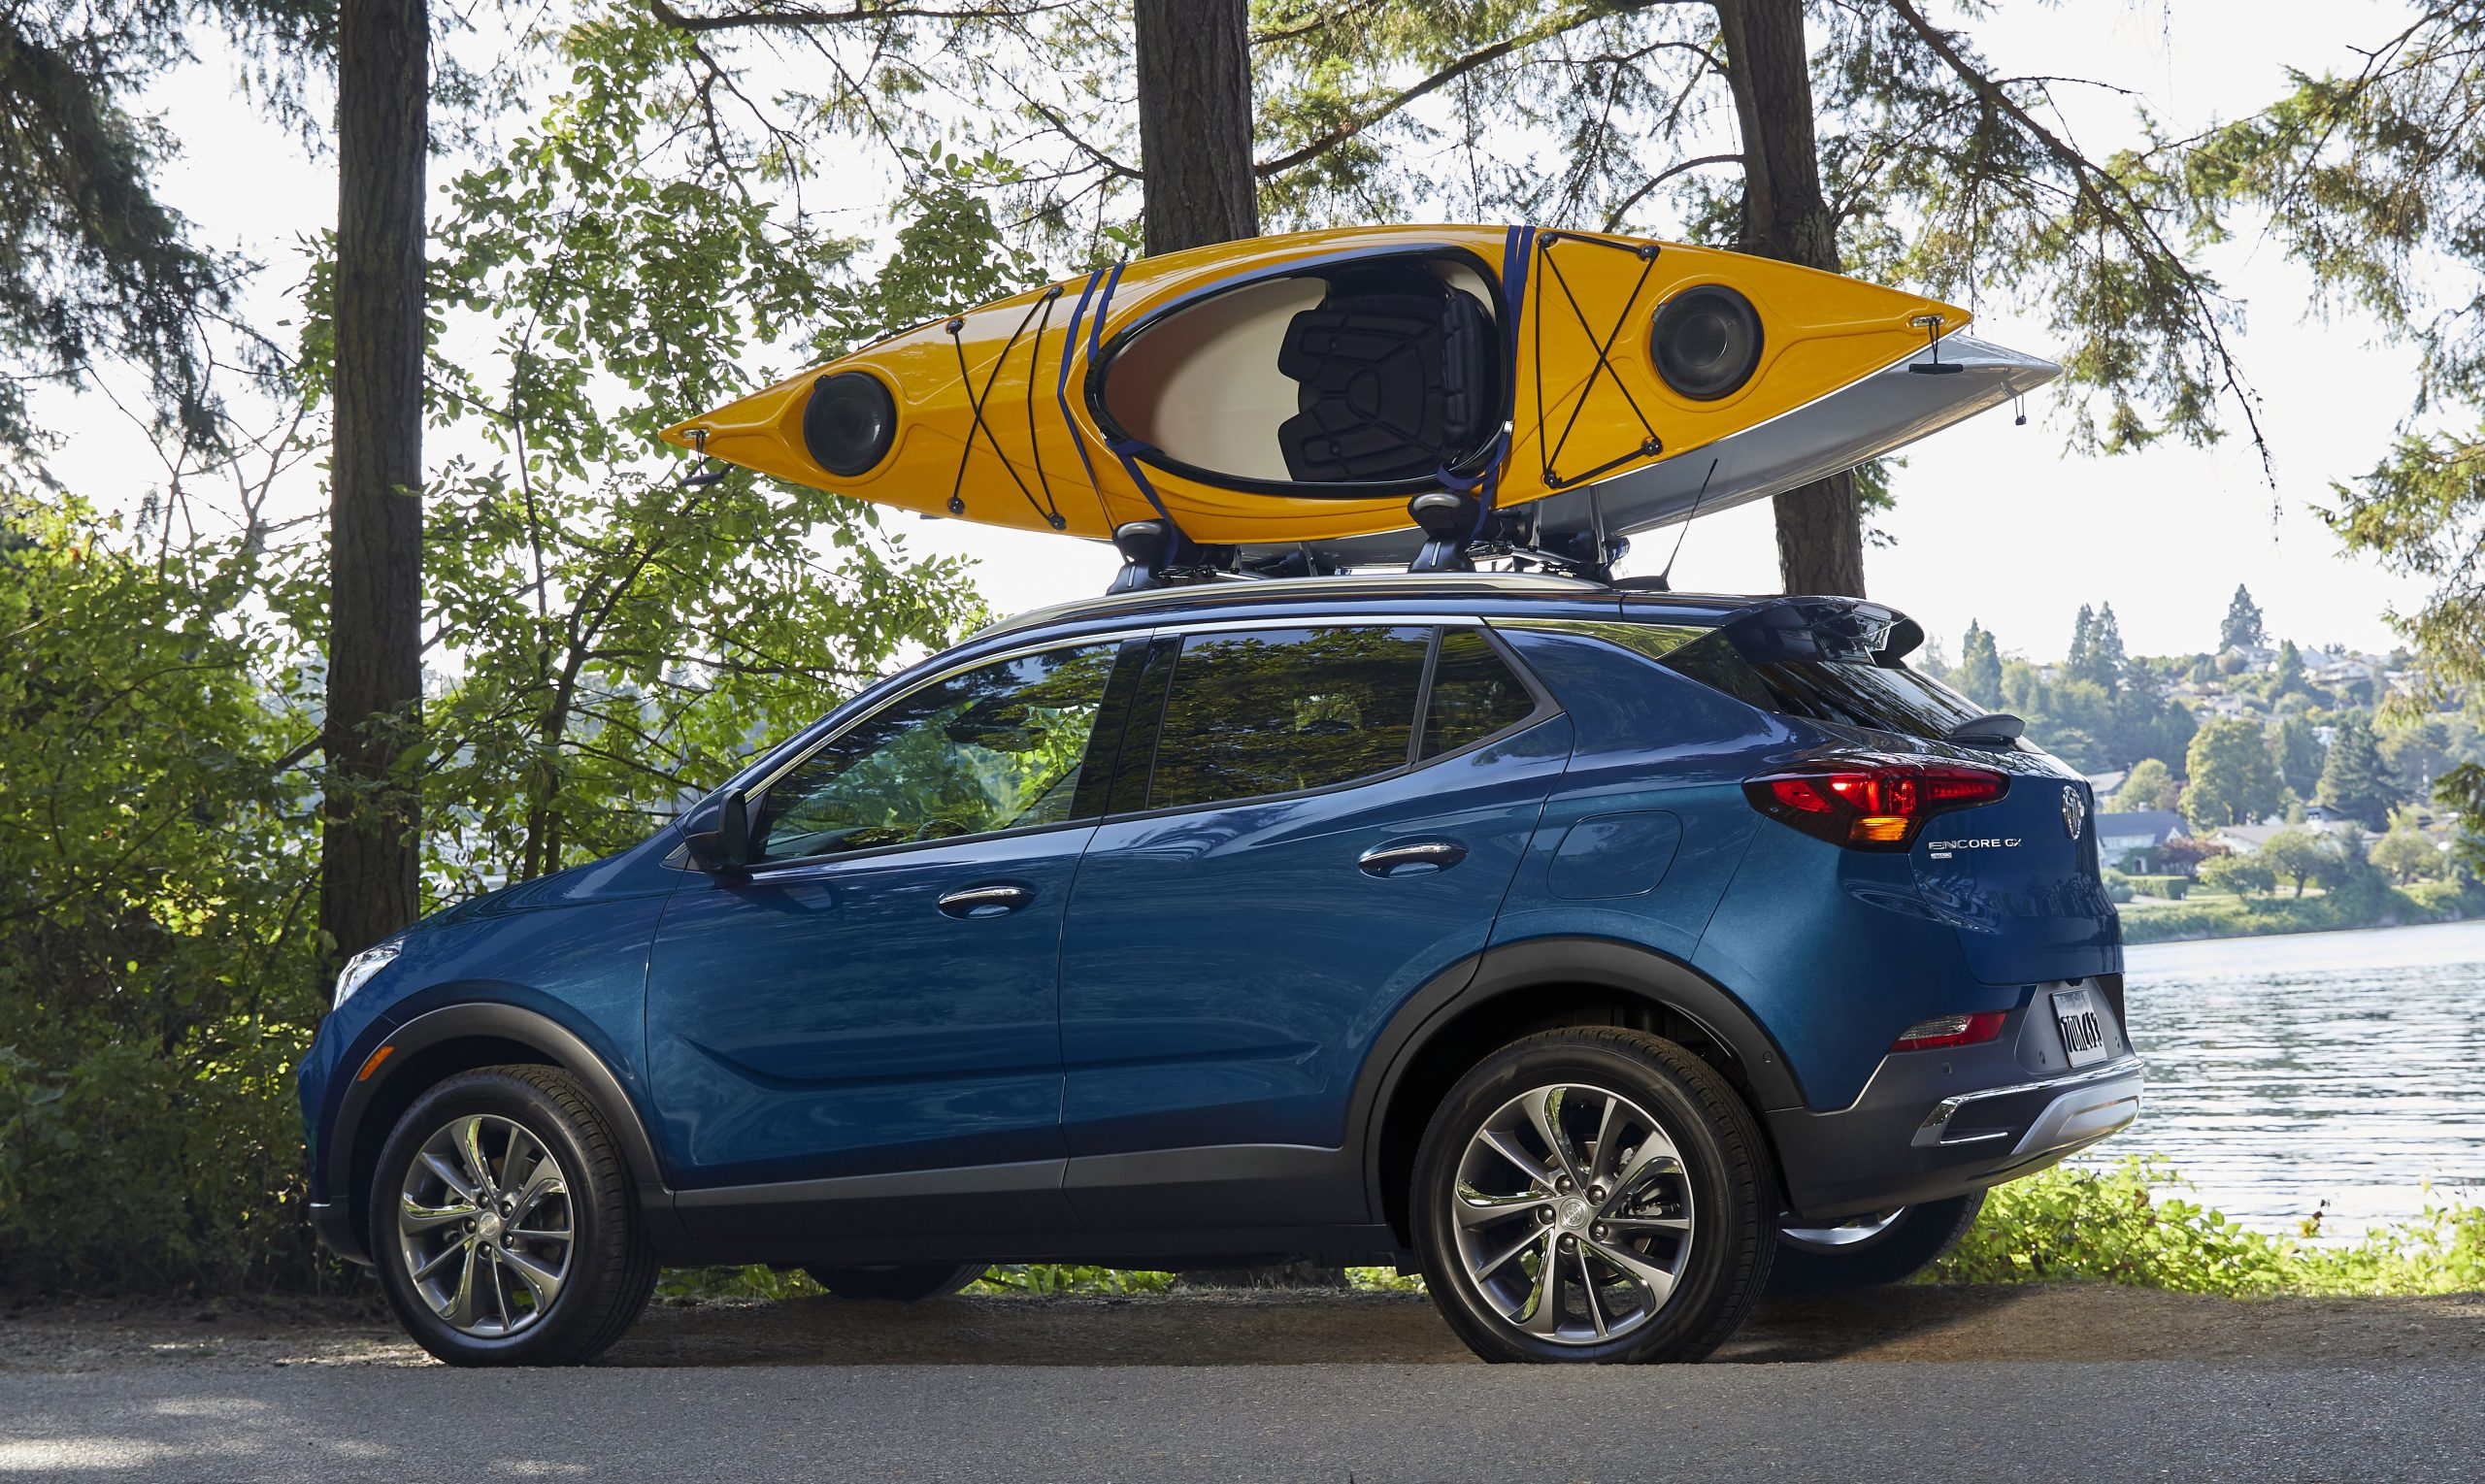 Buick Encore Gx Discount, Special Lease Offer June 2020 | Gm New 2022 Buick Encore Gx Incentives, Inventory, Lease